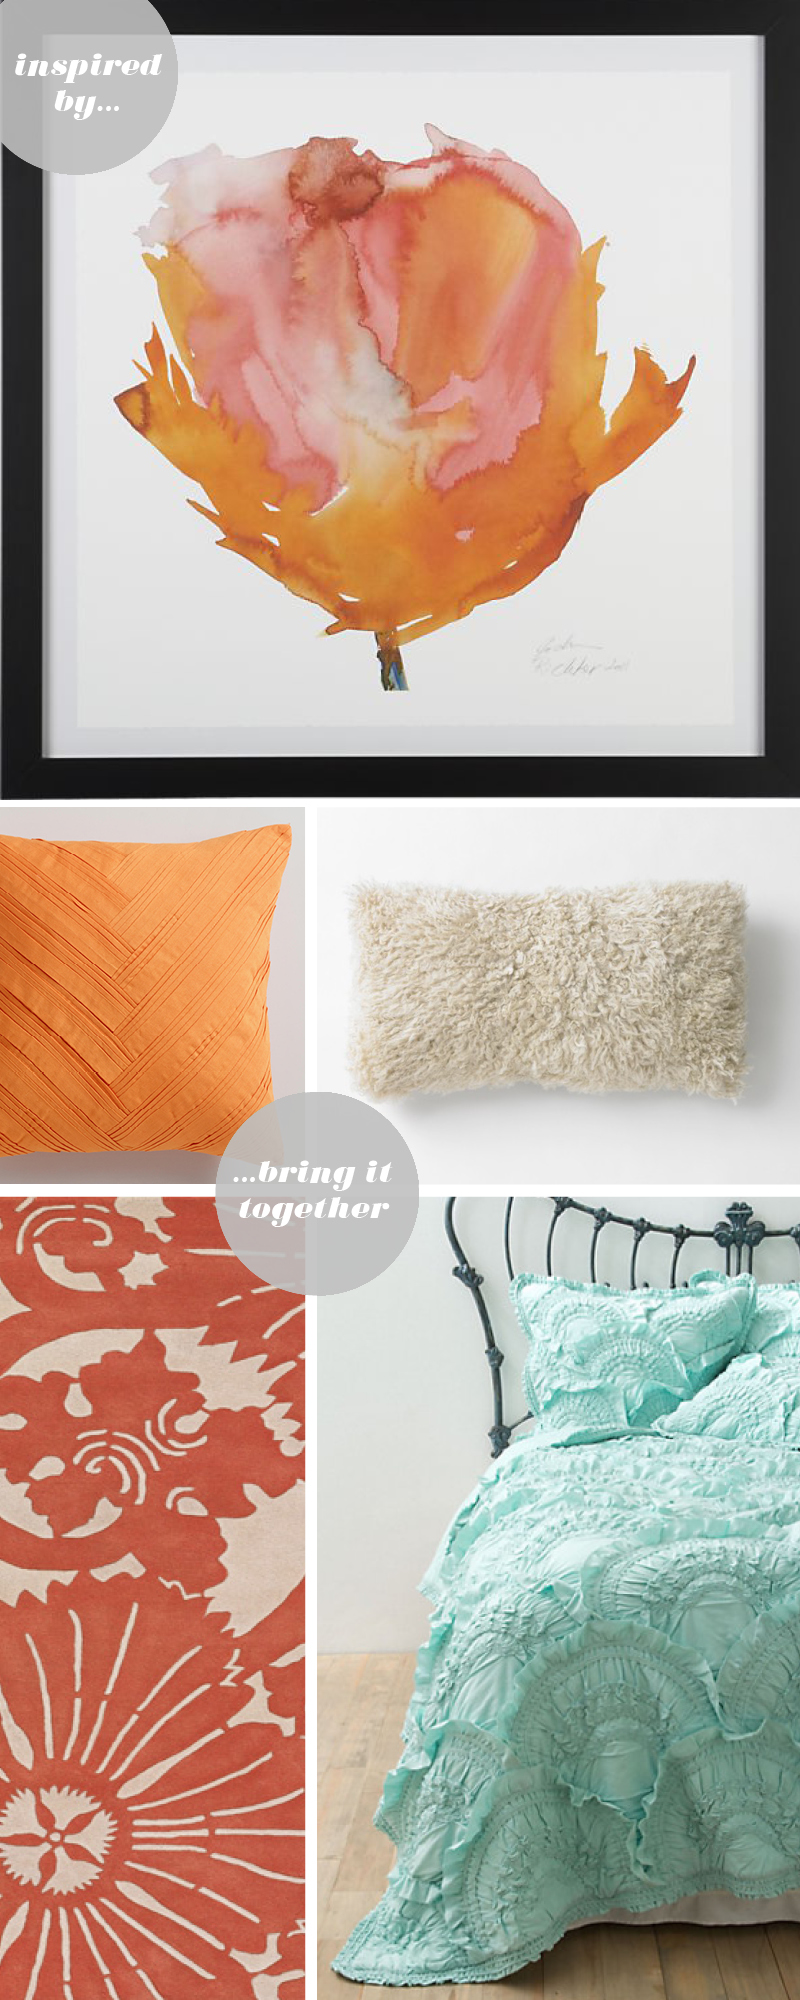 orange poppy print / sheepskin pillow / orange origami throw pillow / rivulets bedding / floral rug